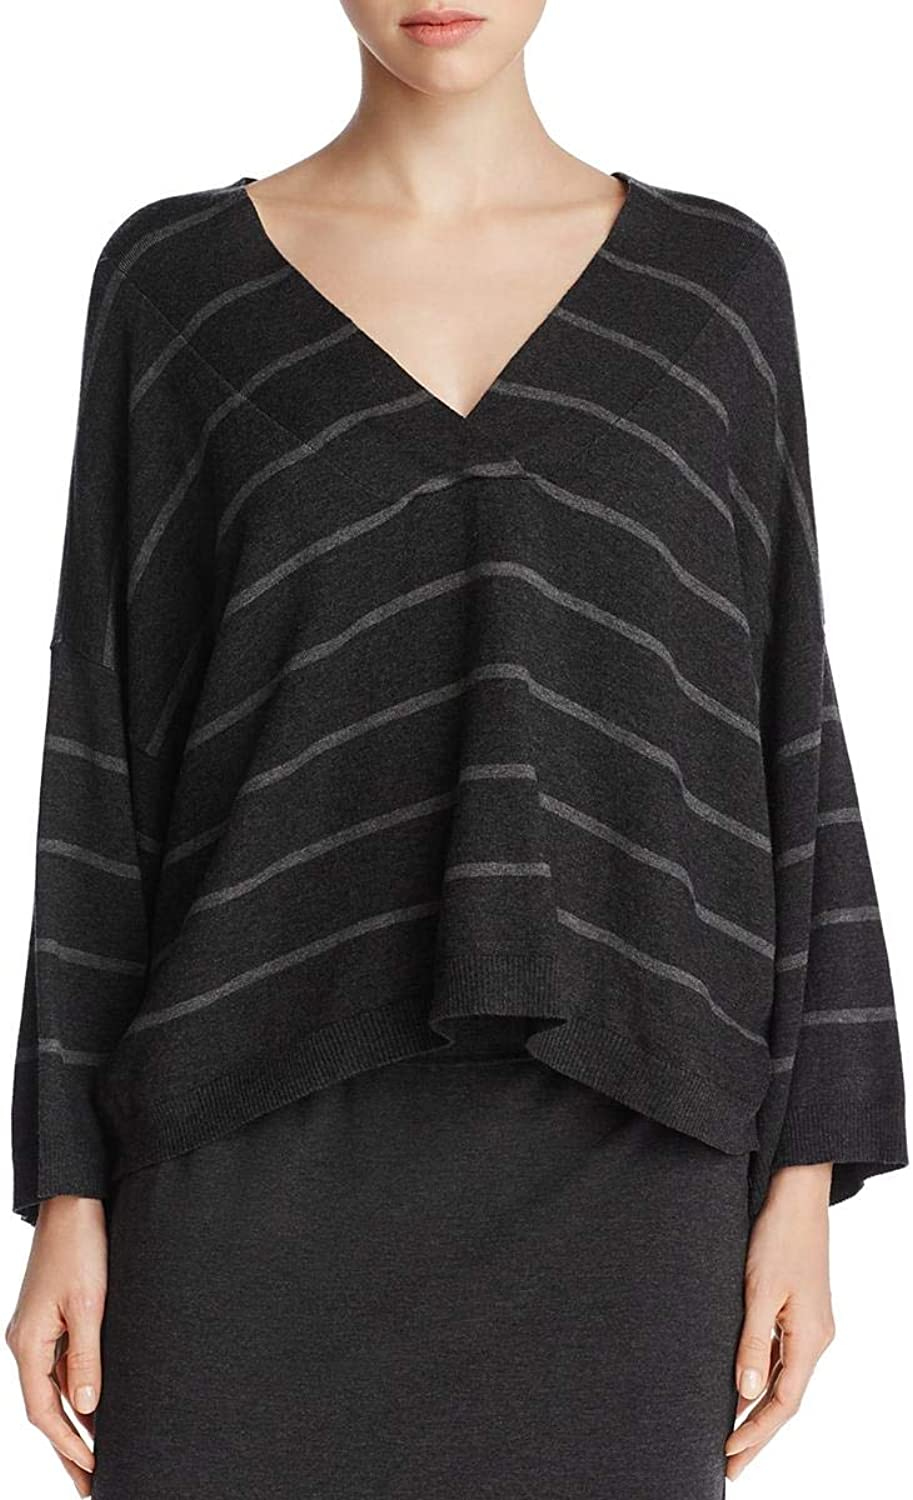 EileenFisher Womens Tencel Striped Crop Sweater